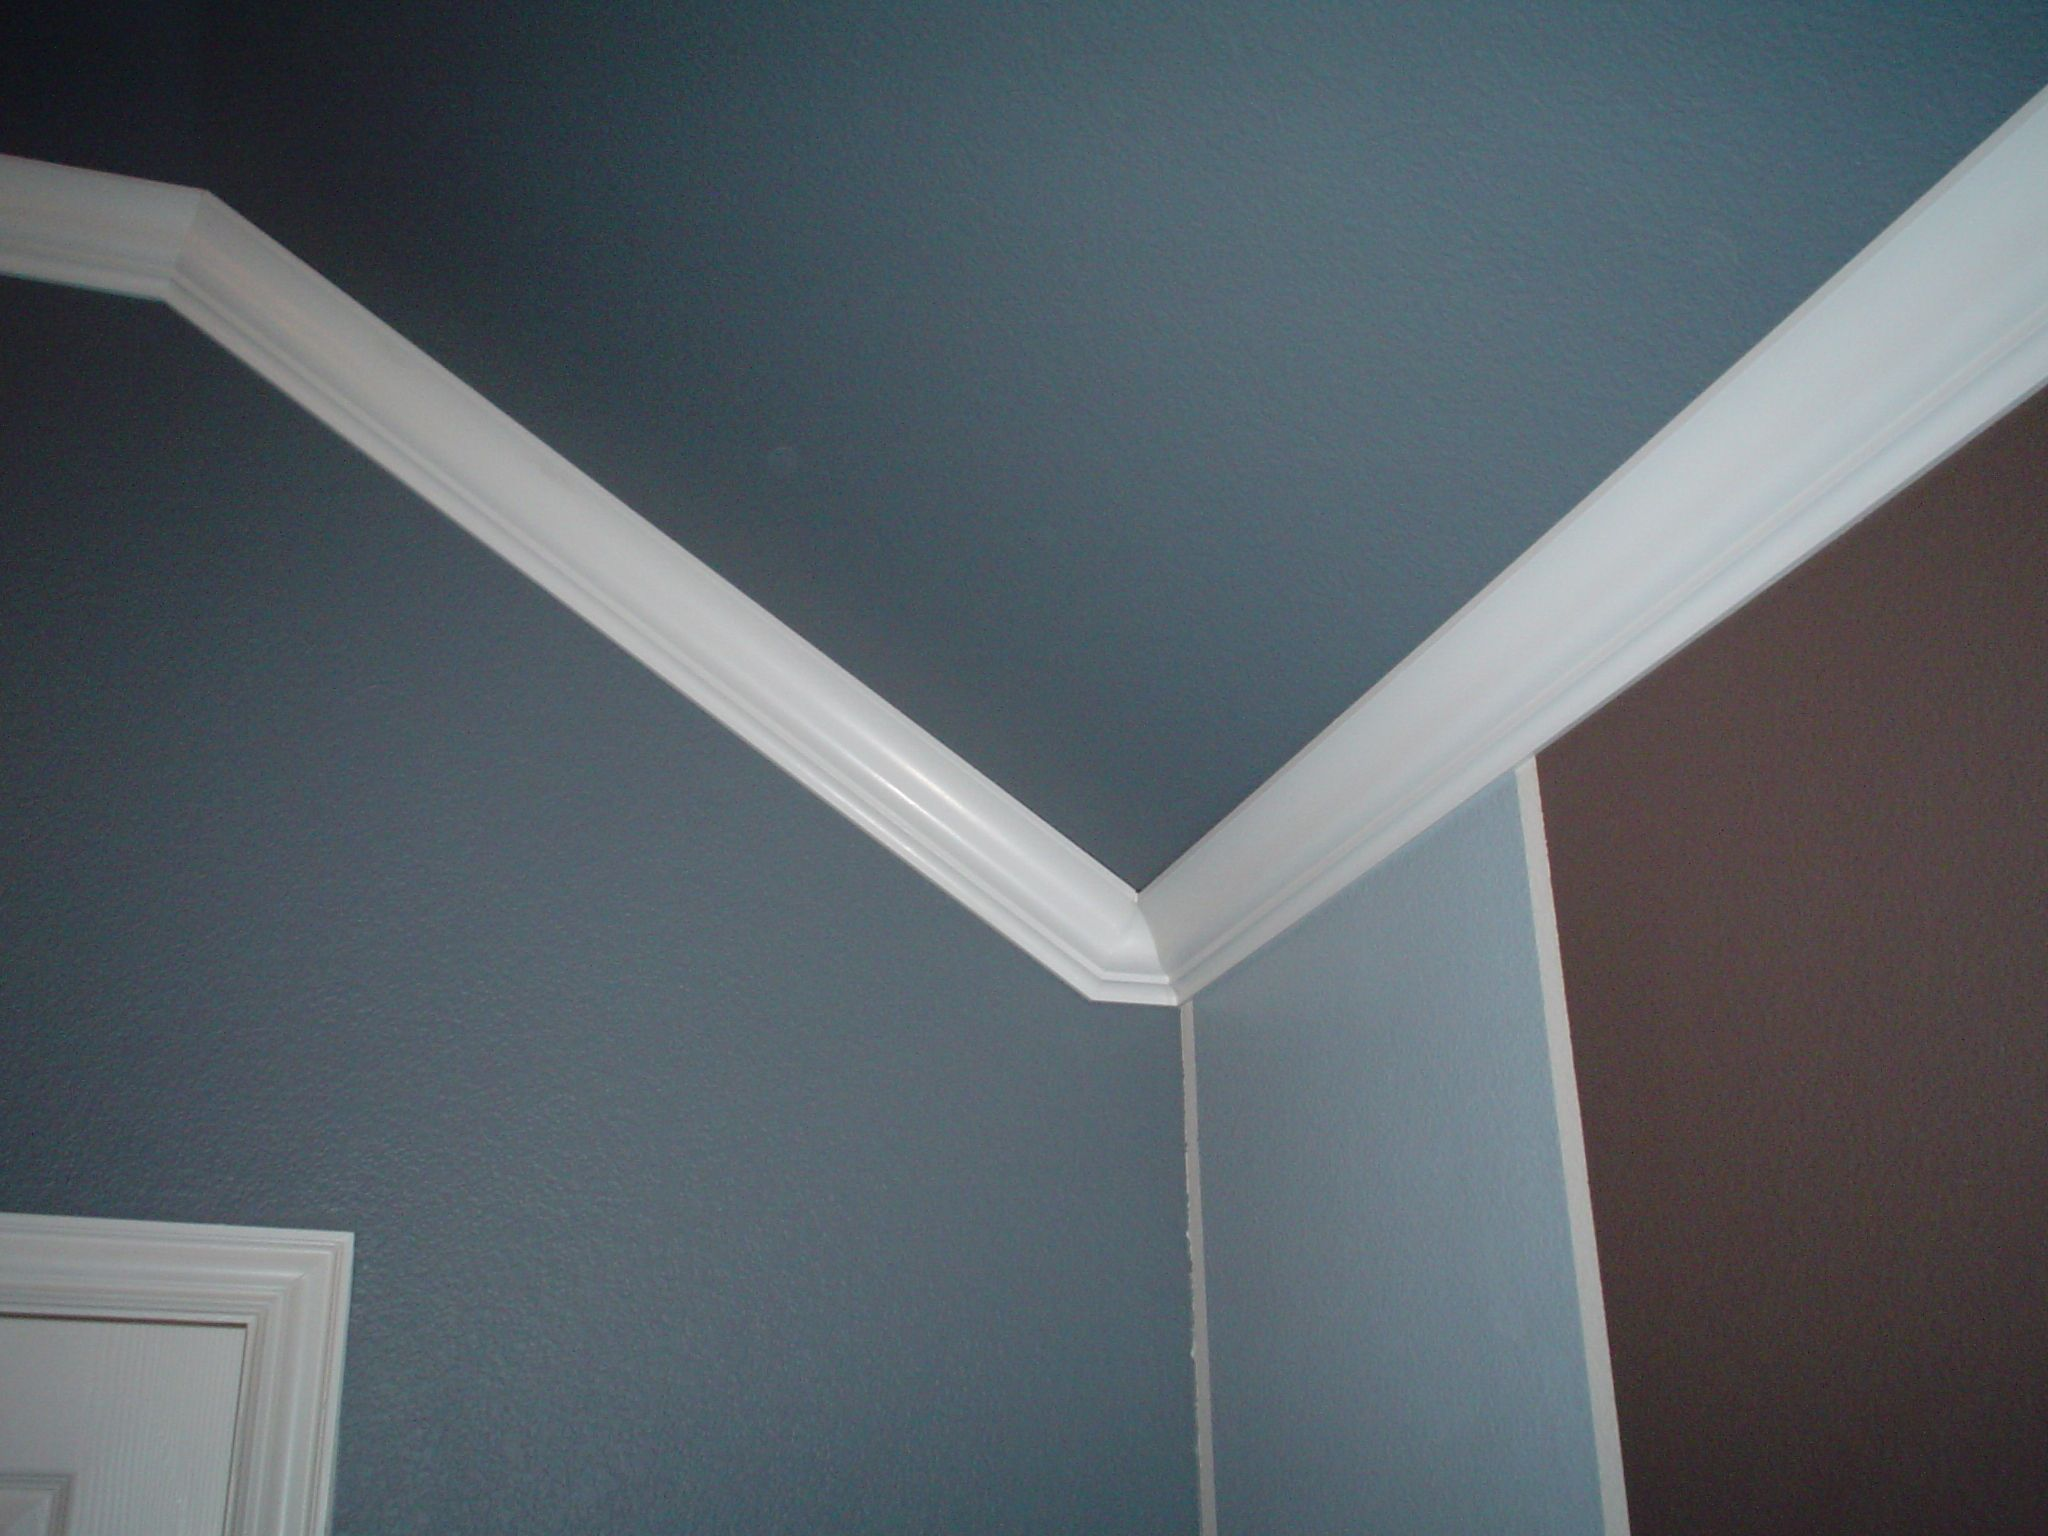 Design Ceiling Trim Ideas angled ceiling crown molding in corner example next project example